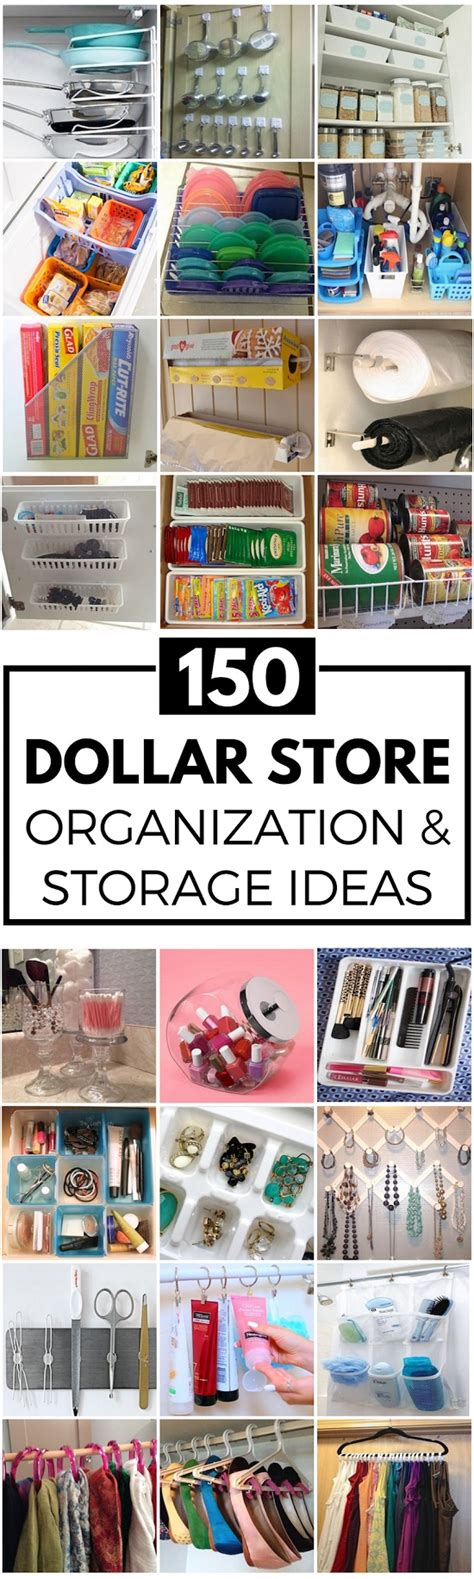 dollar store organizing ideas 150 diy dollar store organization and storage ideas